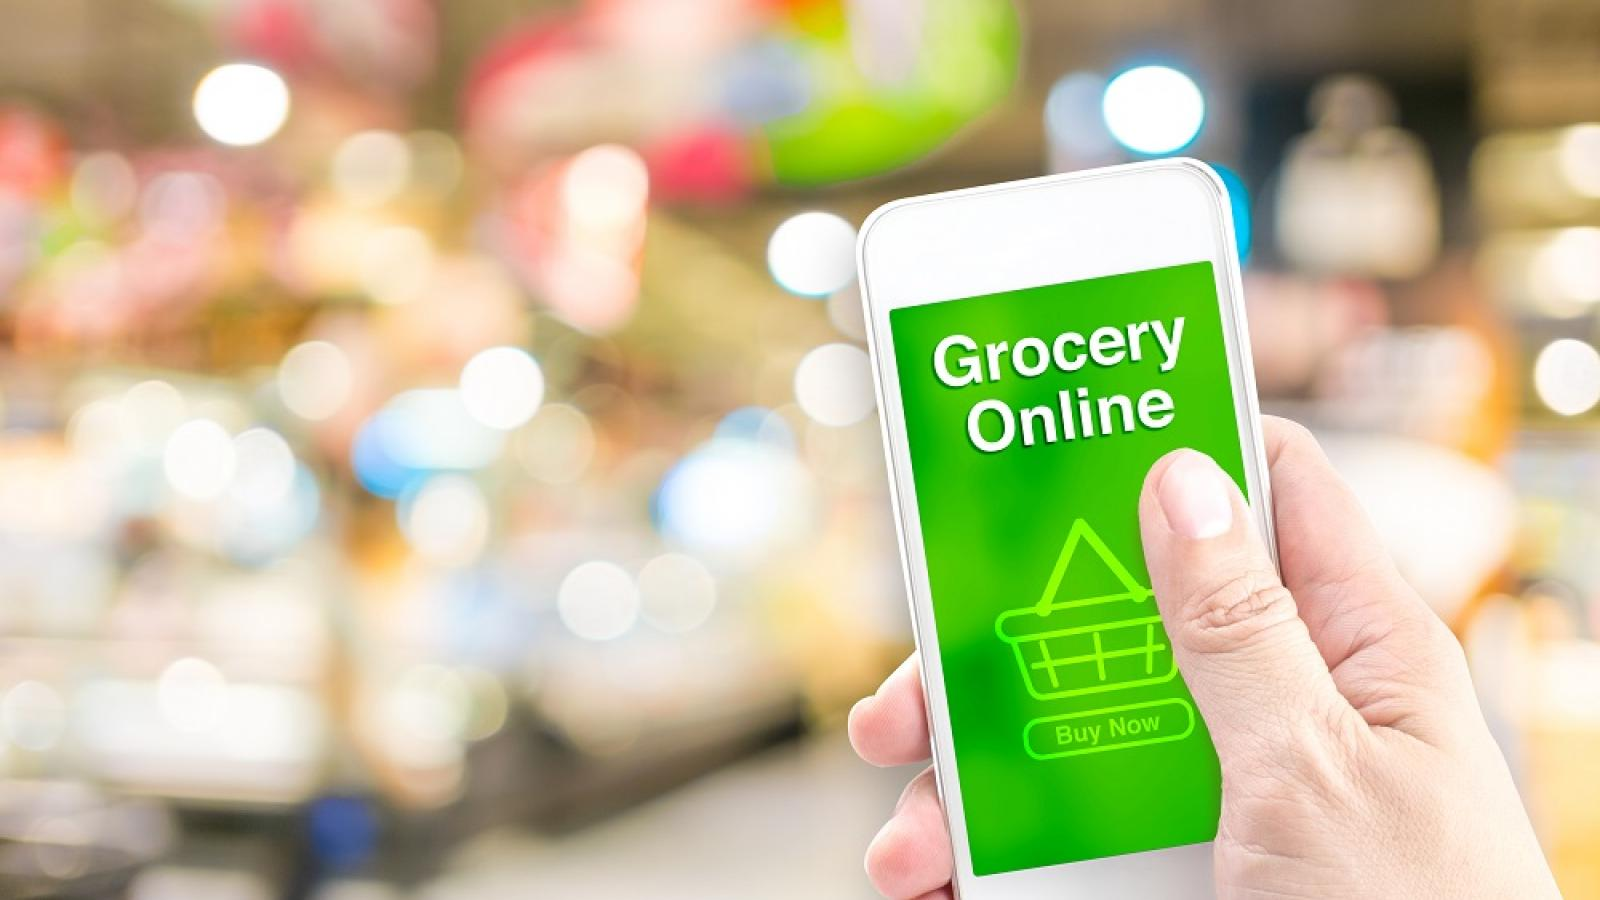 Get your groceries delivered to your doorstep